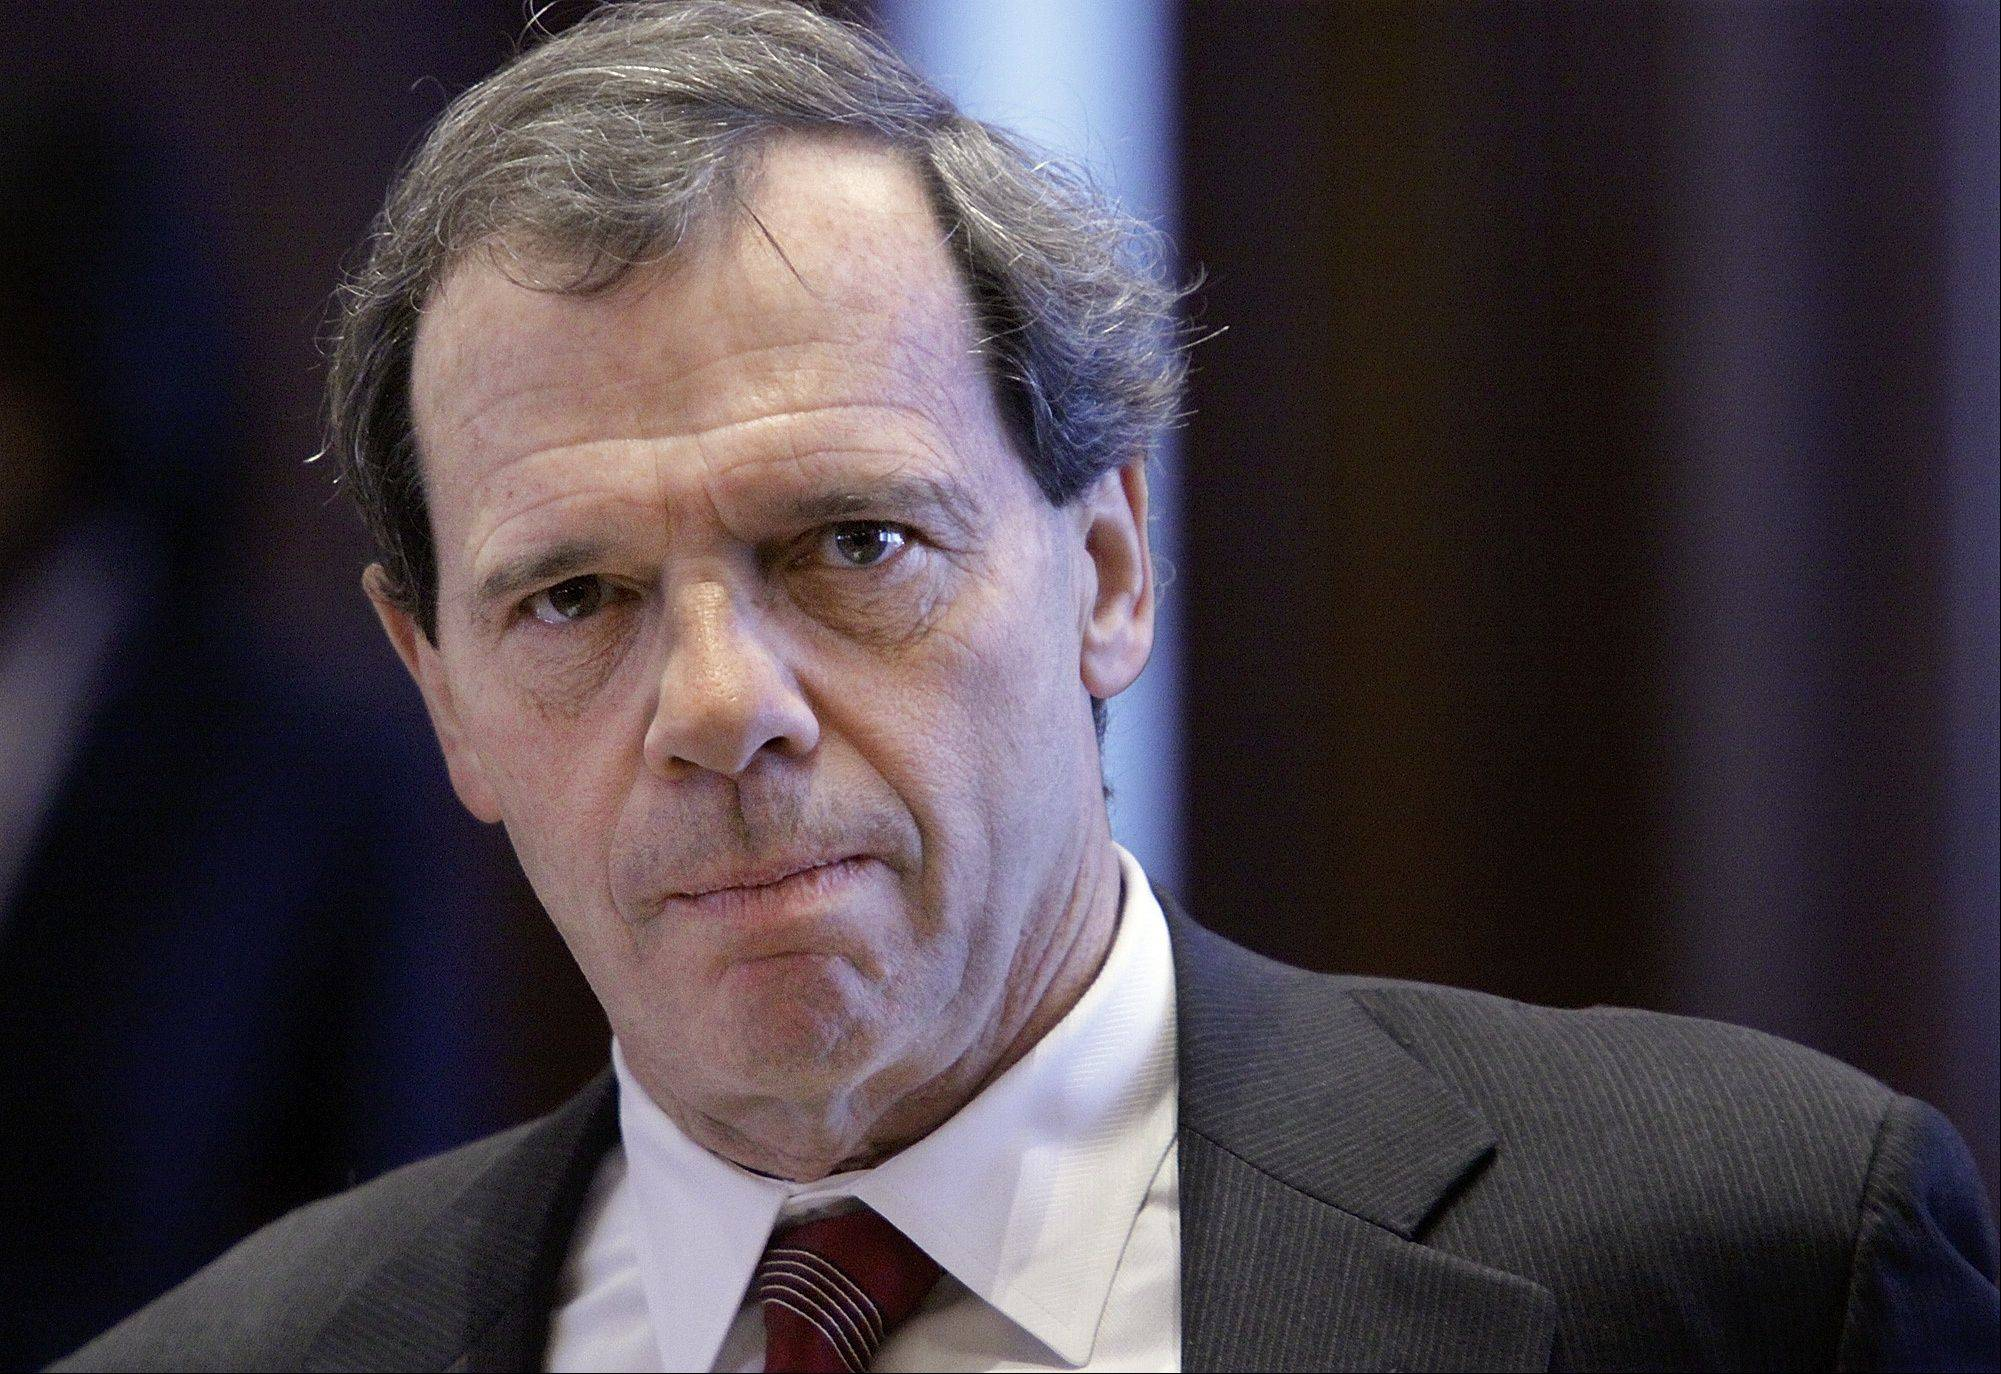 Senate President John Cullerton said Tuesday he expects lawmakers to try to expand gambling again in 2012.